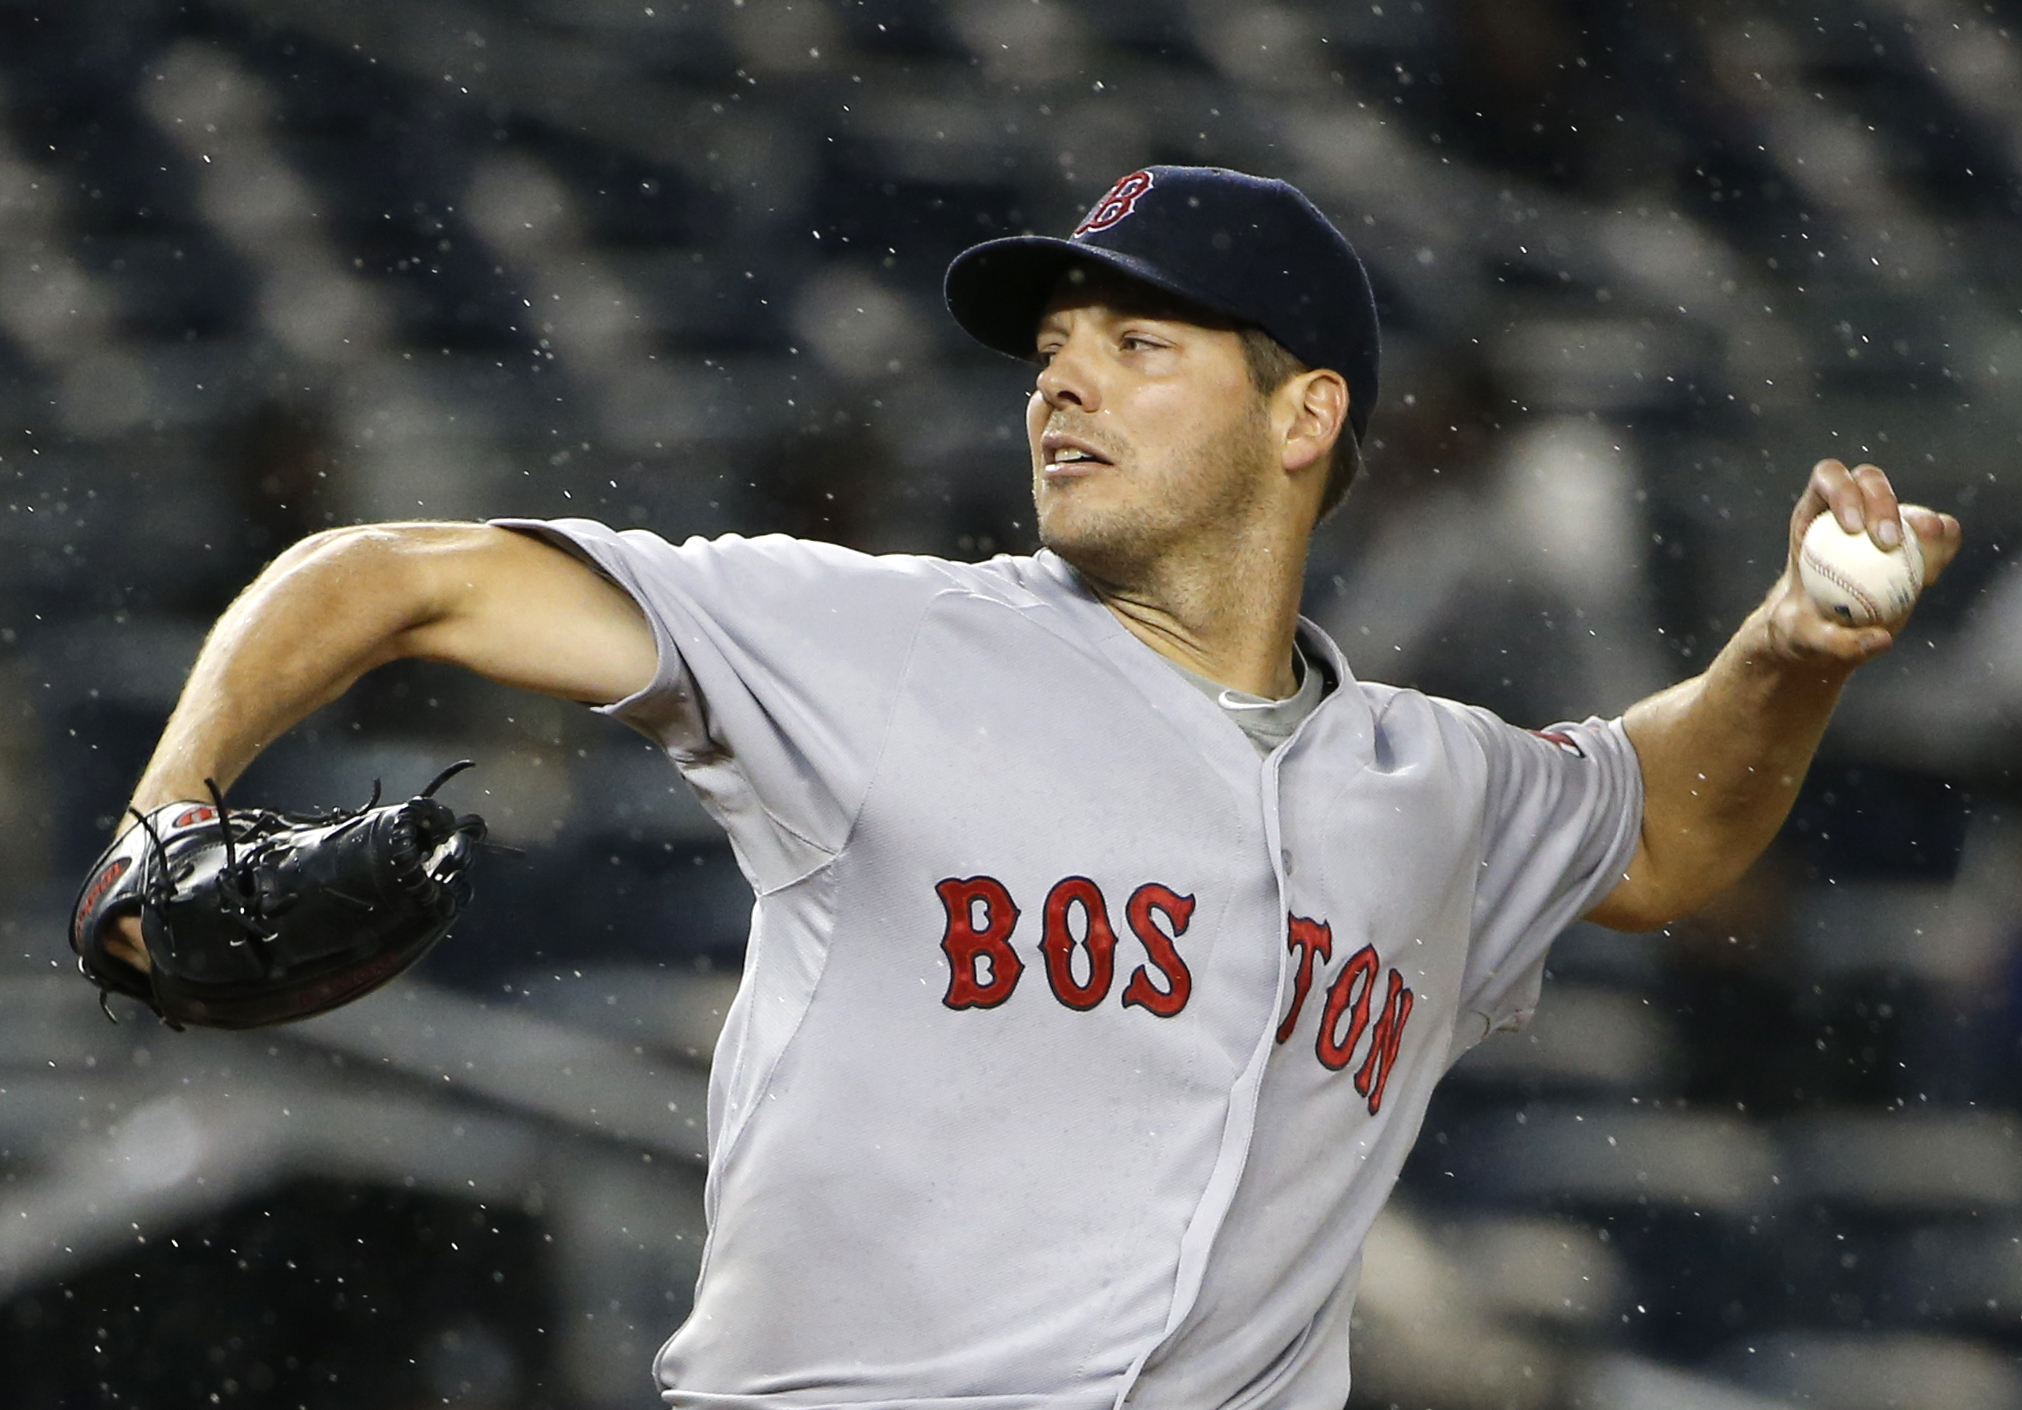 FILE - In this Oct. 1, 2015, file photo, Boston Red Sox starting pitcher Rich Hill delivers in the first inning of a baseball game against the New York Yankees in New York. Left-hander Rich Hill has agreed to a $6 million, one-year contract with the Oakla